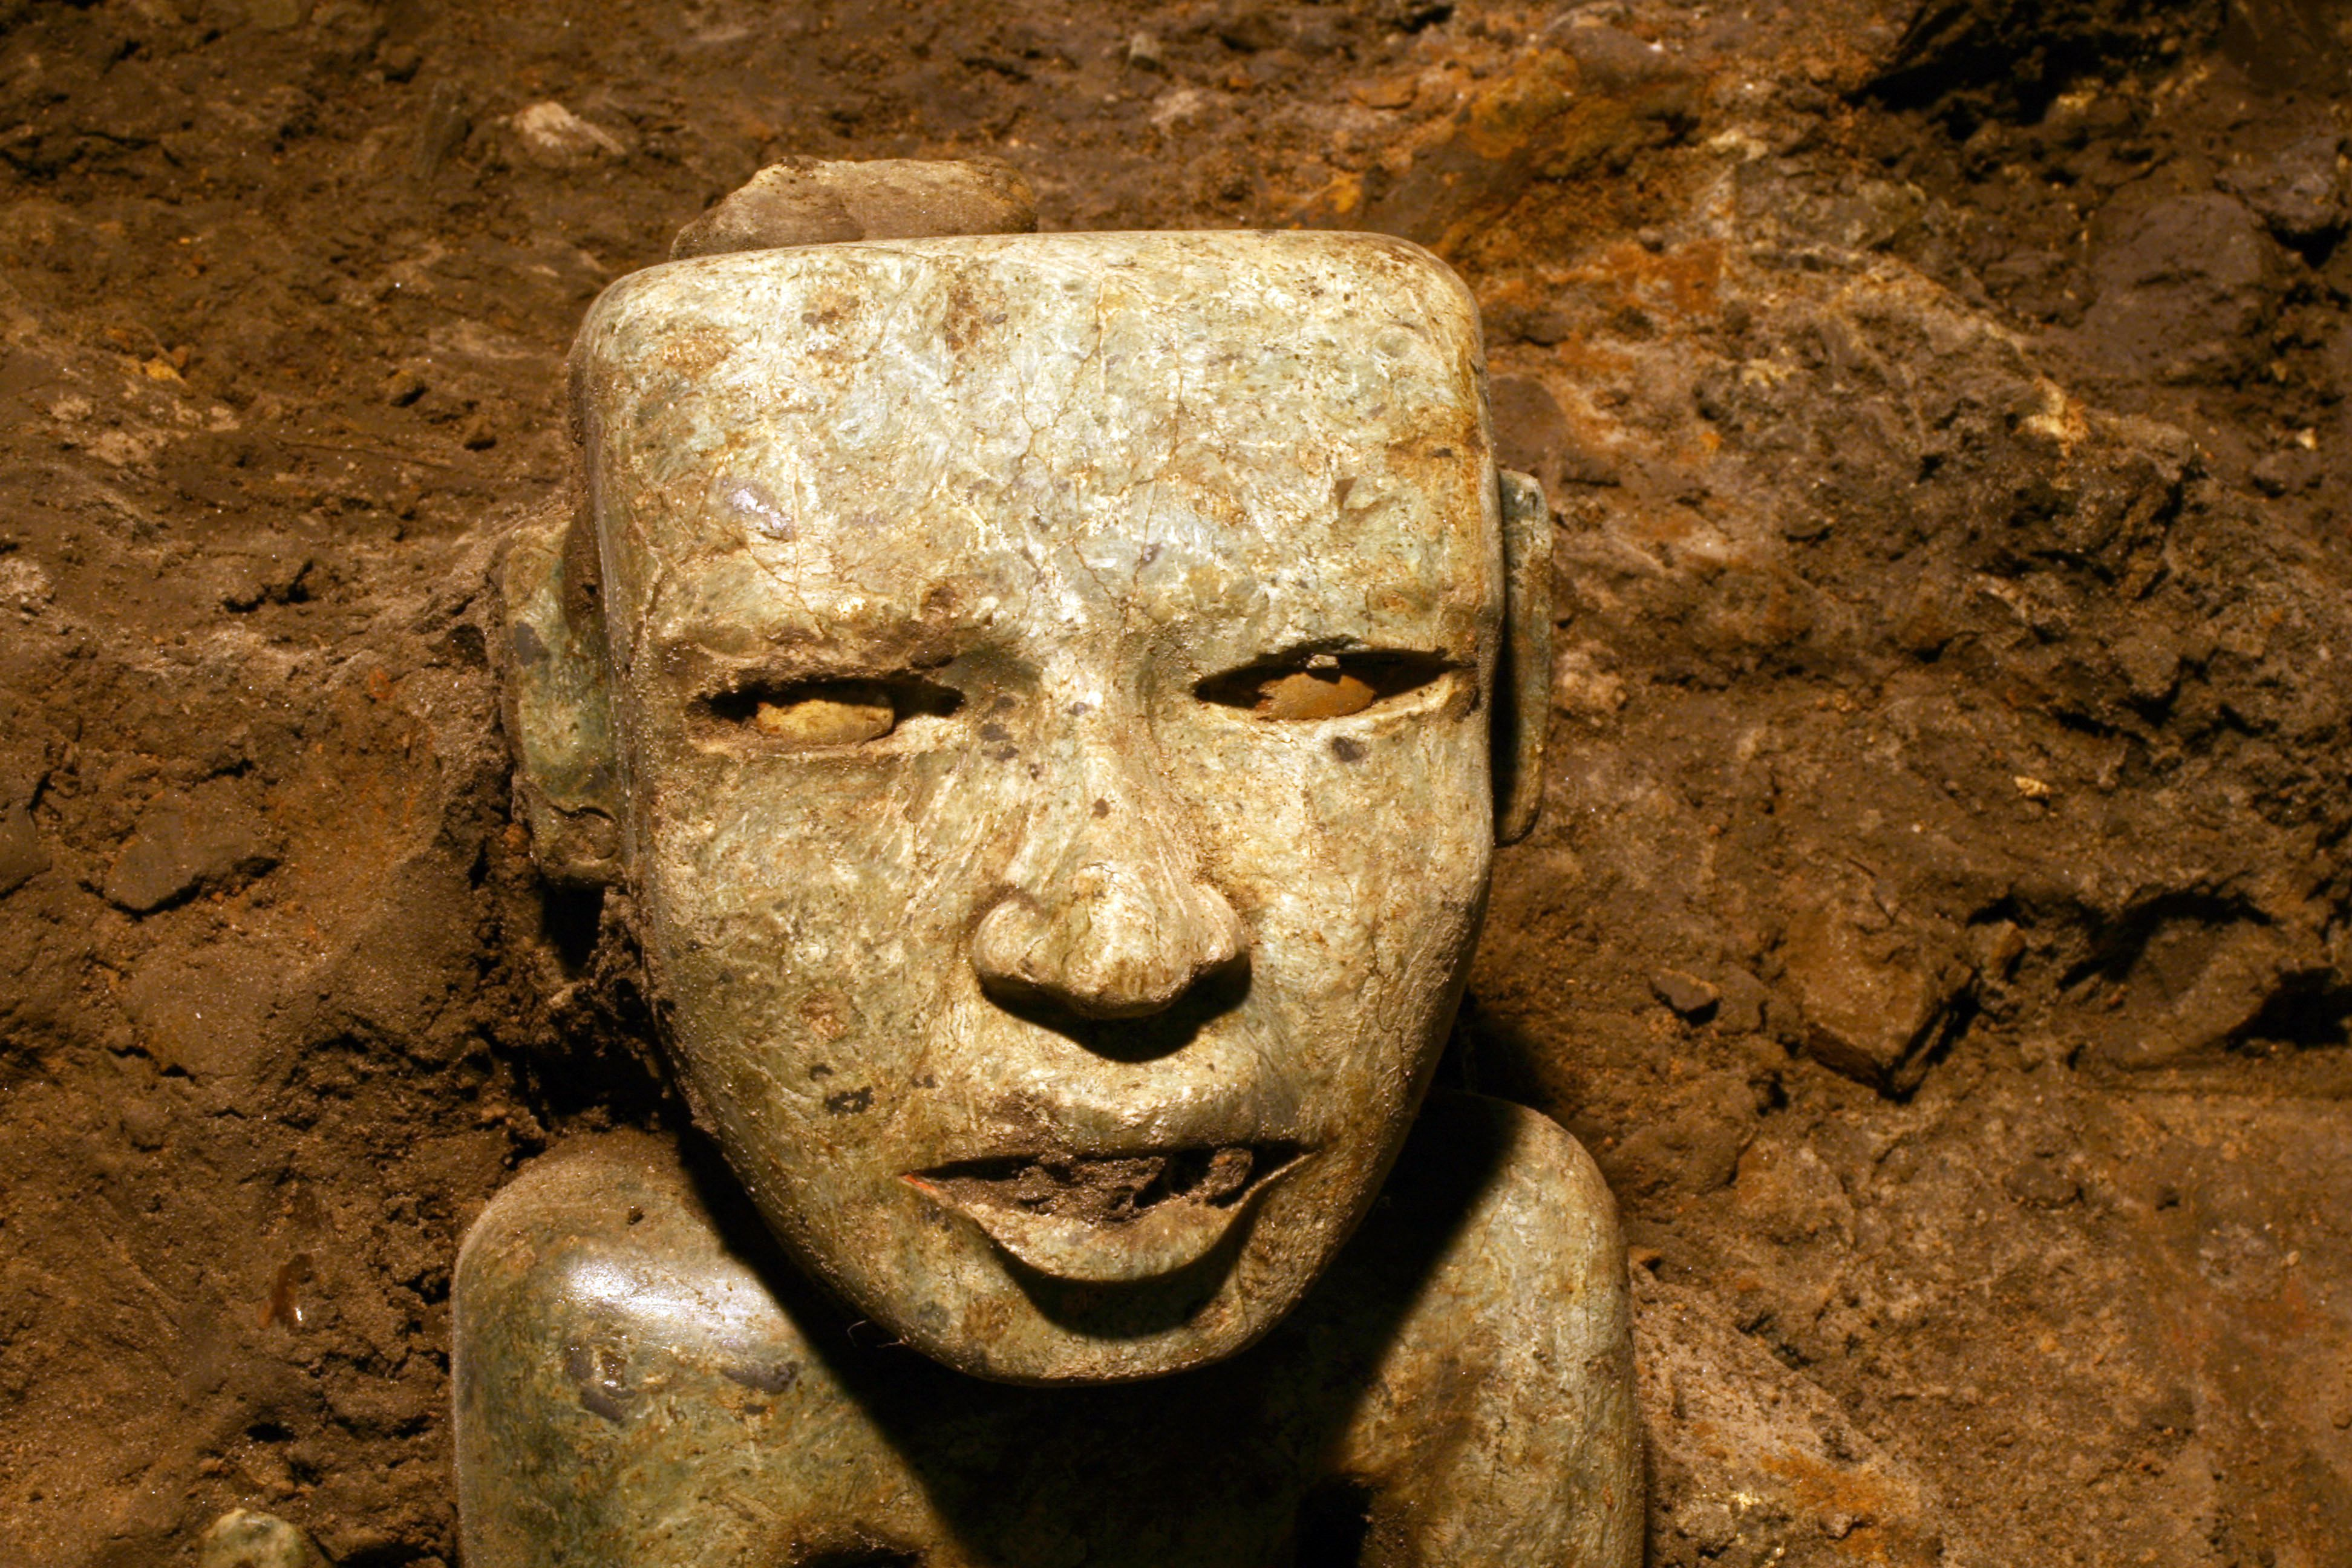 The mystery of the ancient stone with a human face